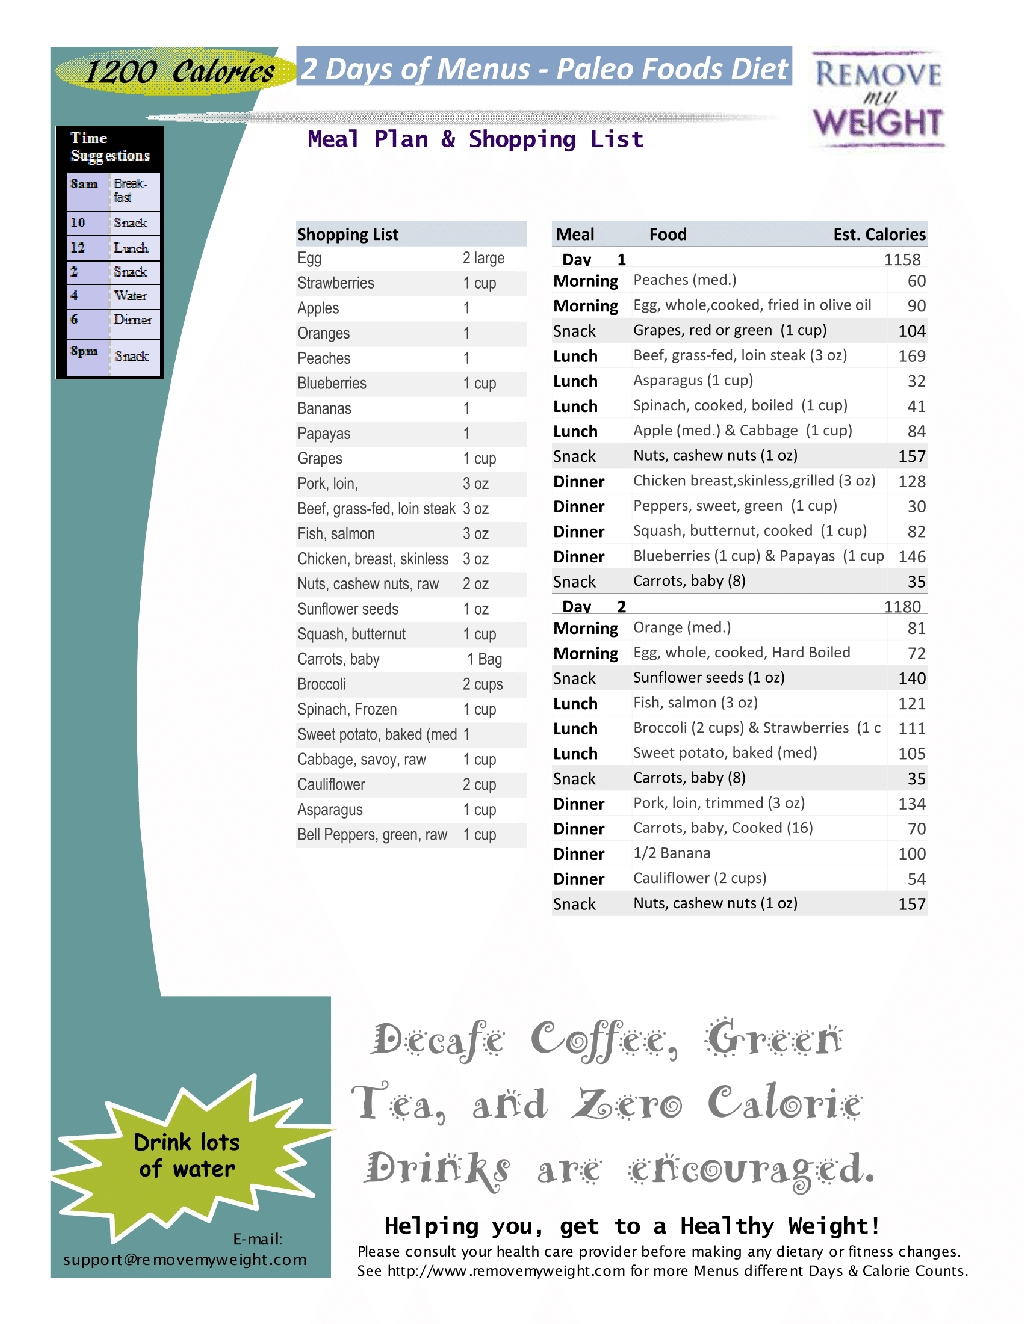 10 Unique 1200 Calorie Diet Menu Ideas paleo diet menu plan 7 days 1200 calories with shopping list 2020